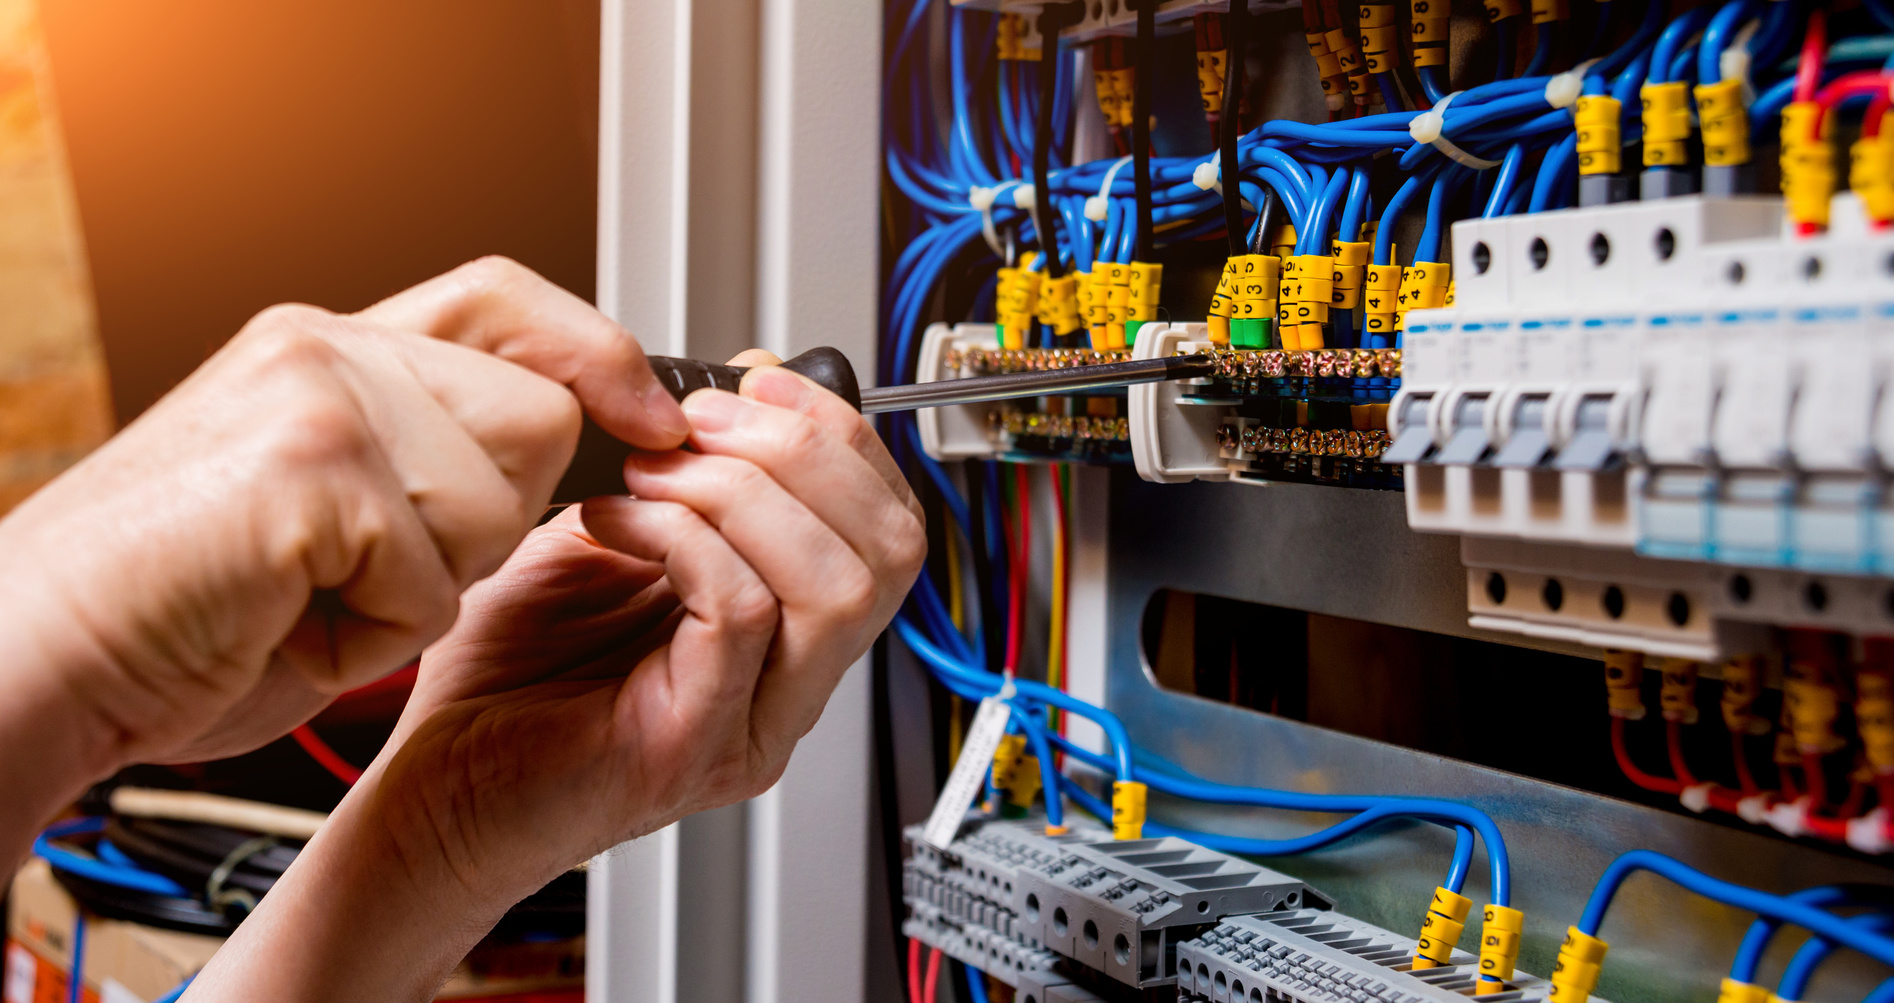 surrey electrician working on electric panel